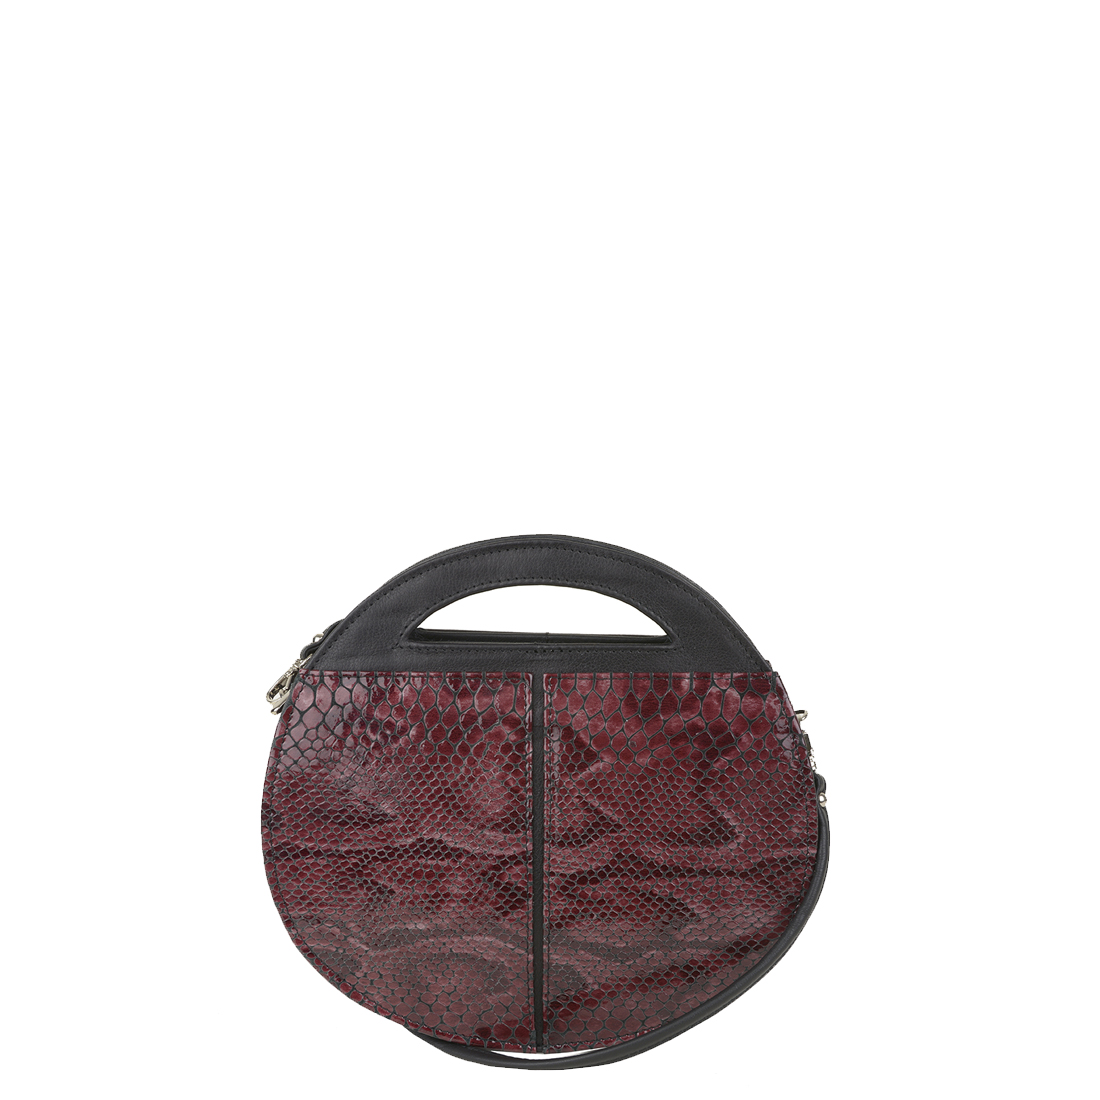 Olivia Plum Python Print  Leather Shoulder Bag